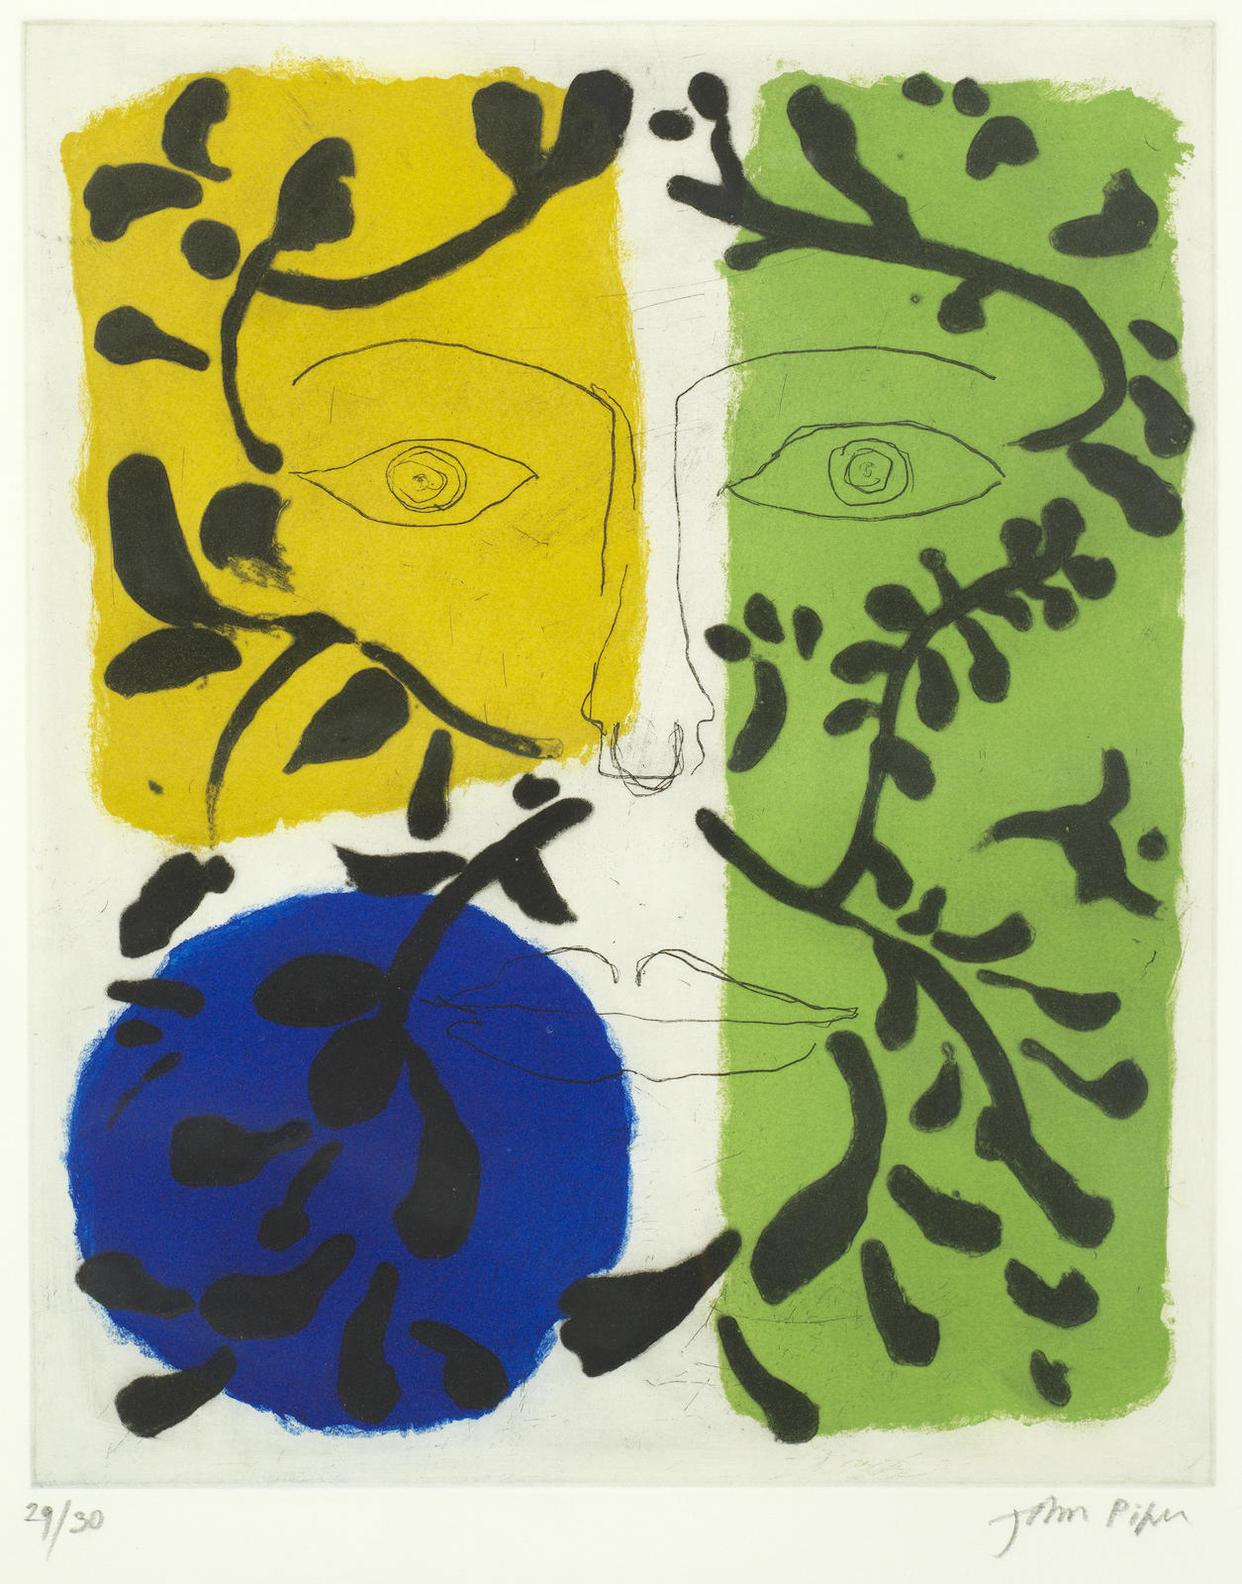 John Piper-The Seasons: Spring, Summer, Autumn And Winter (Levinson329, 330, 331, 332)-1981